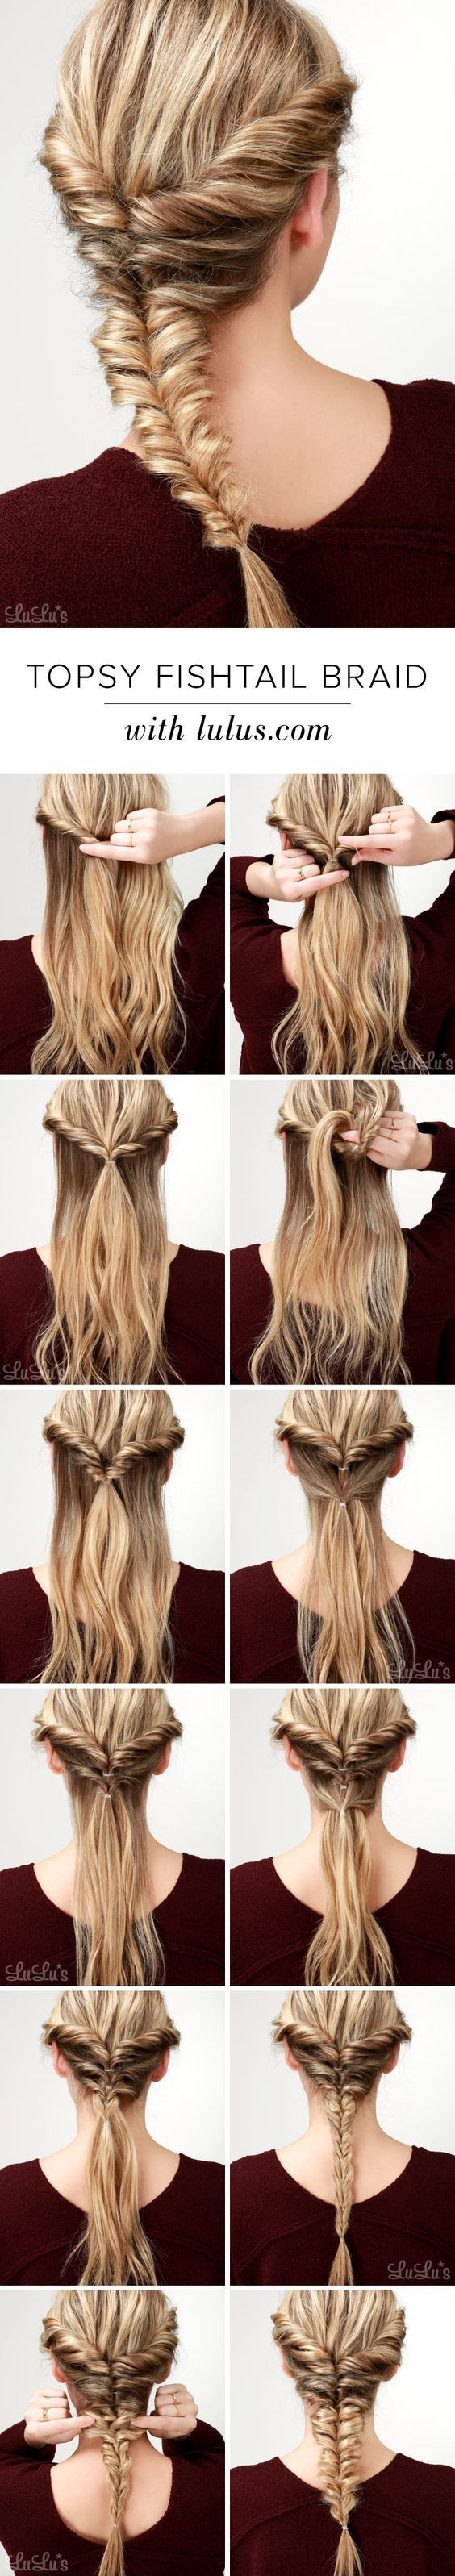 10 Cute Braided Hairstyle Ideas: Stylish Long Hairstyles 2017